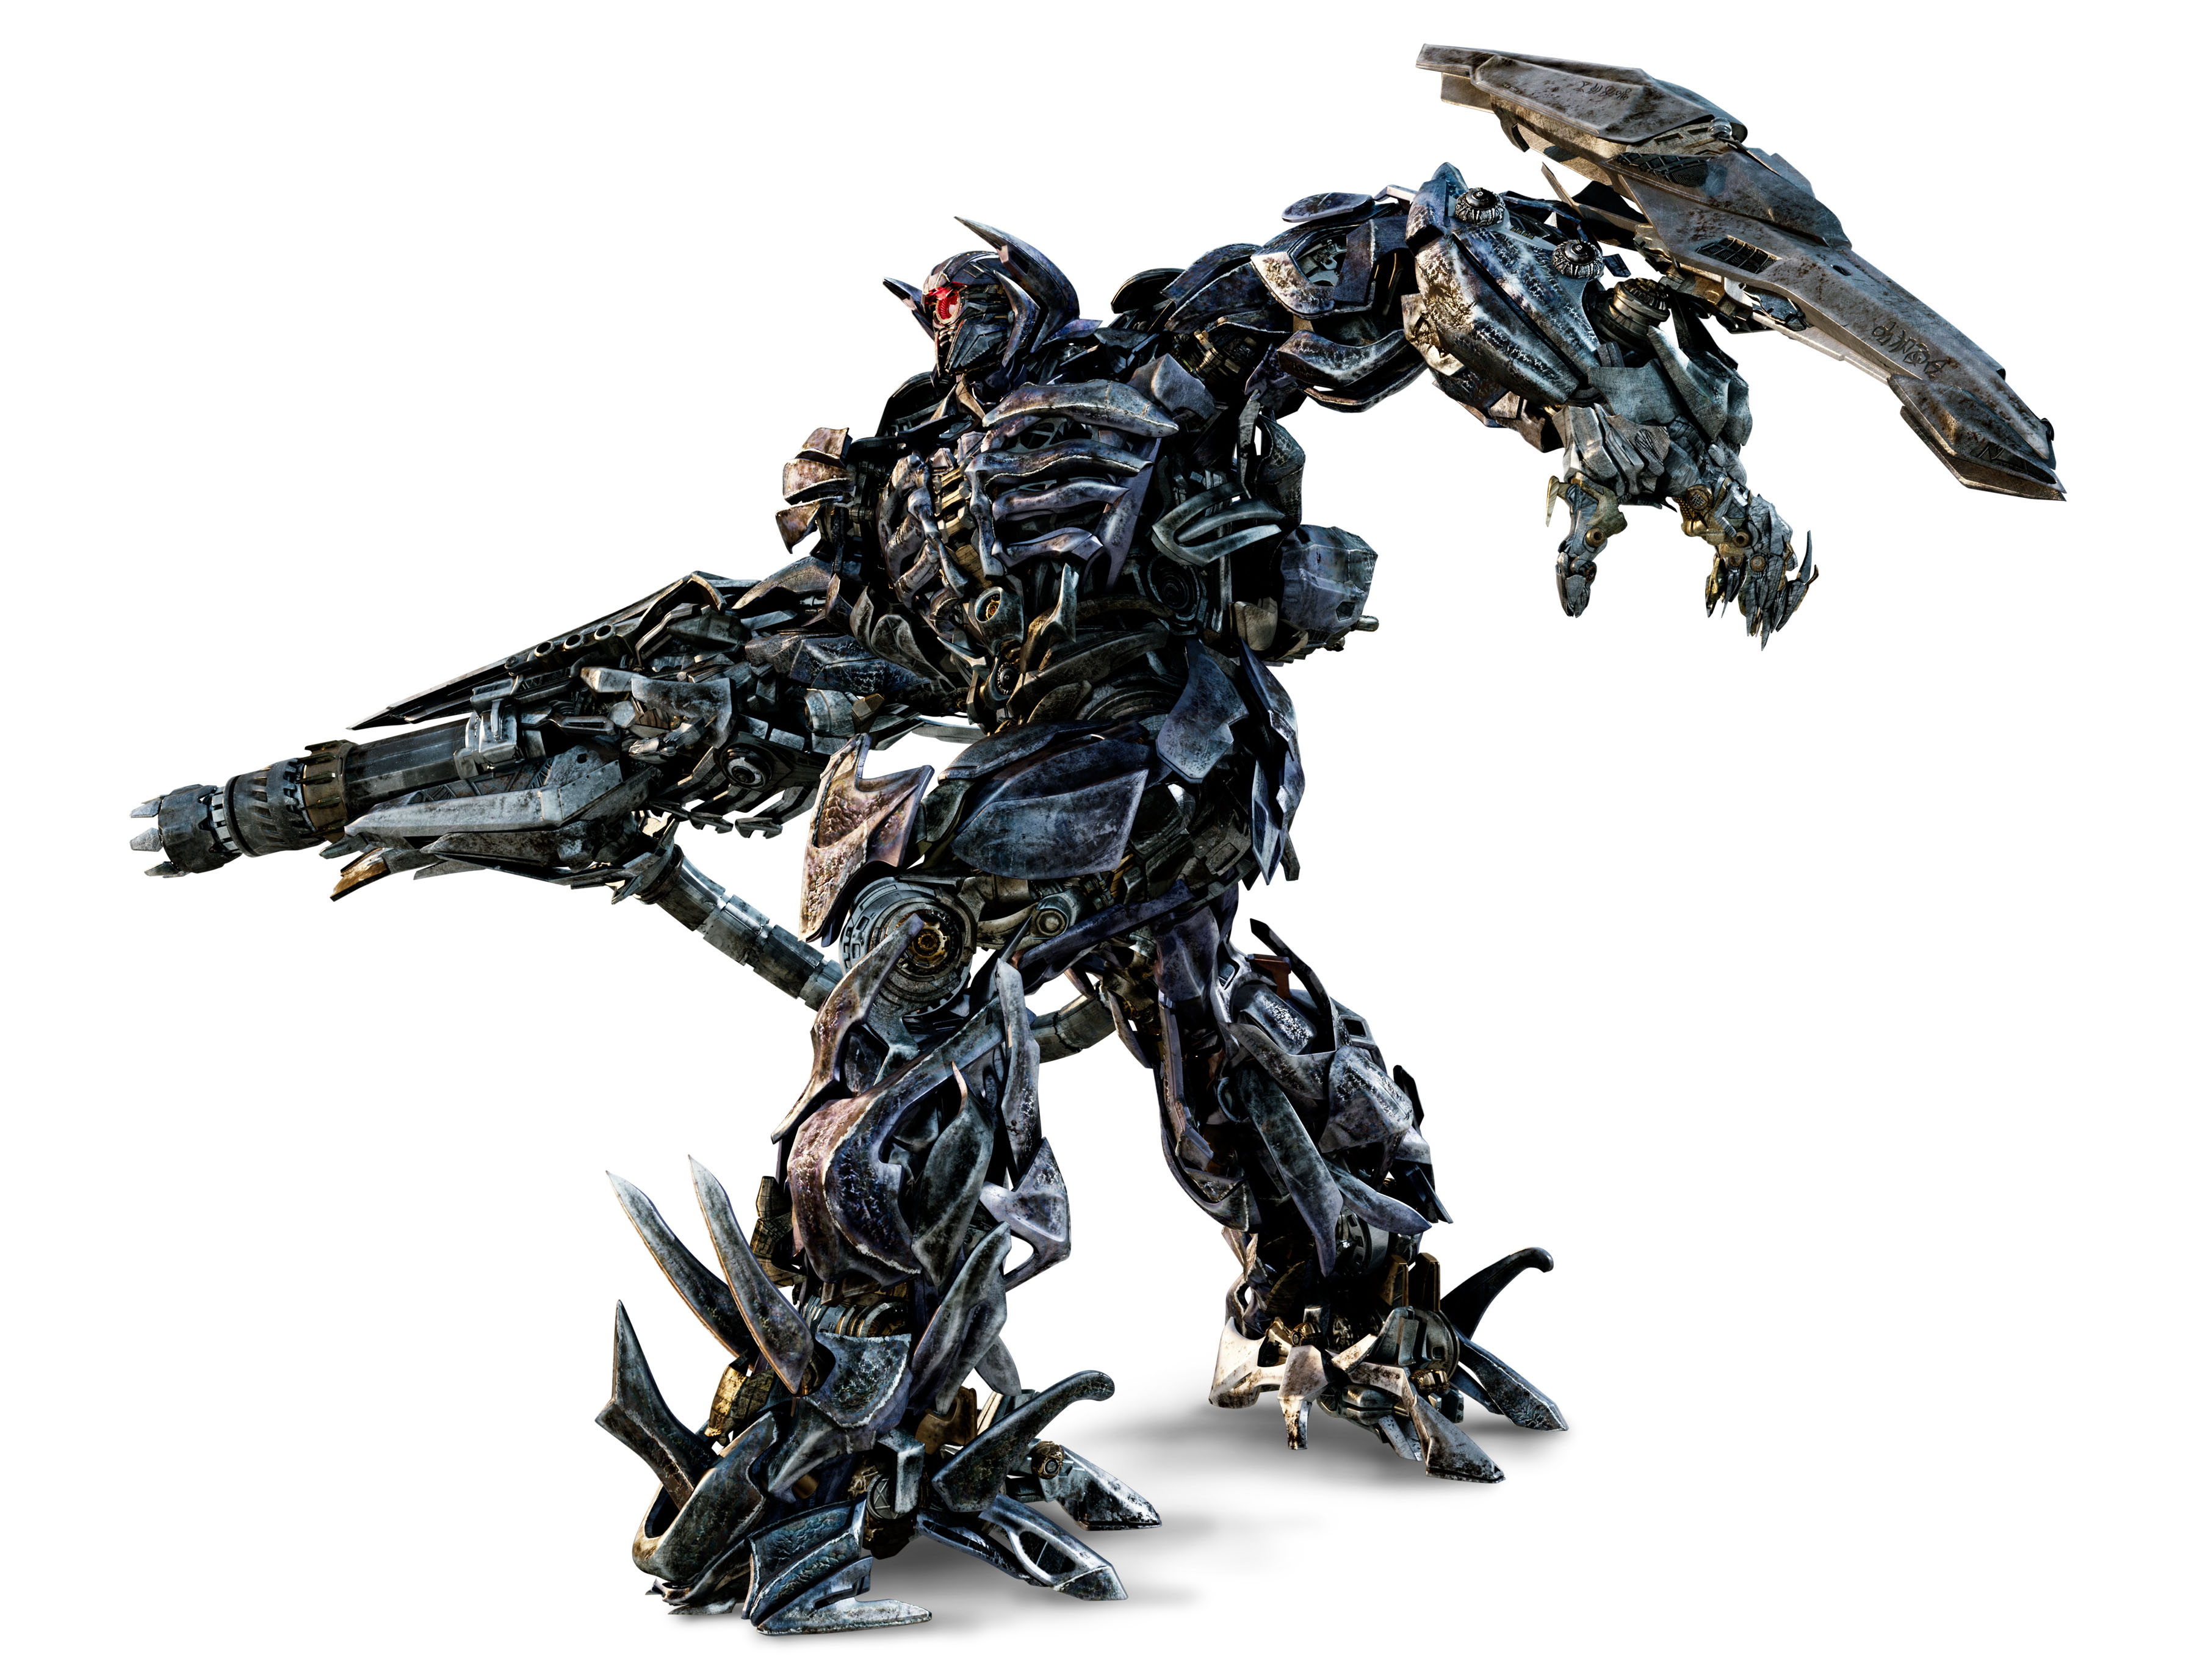 http://images1.wikia.nocookie.net/__cb20110929162905/transformers/images/1/10/Dotm-shockwave-2.jpg